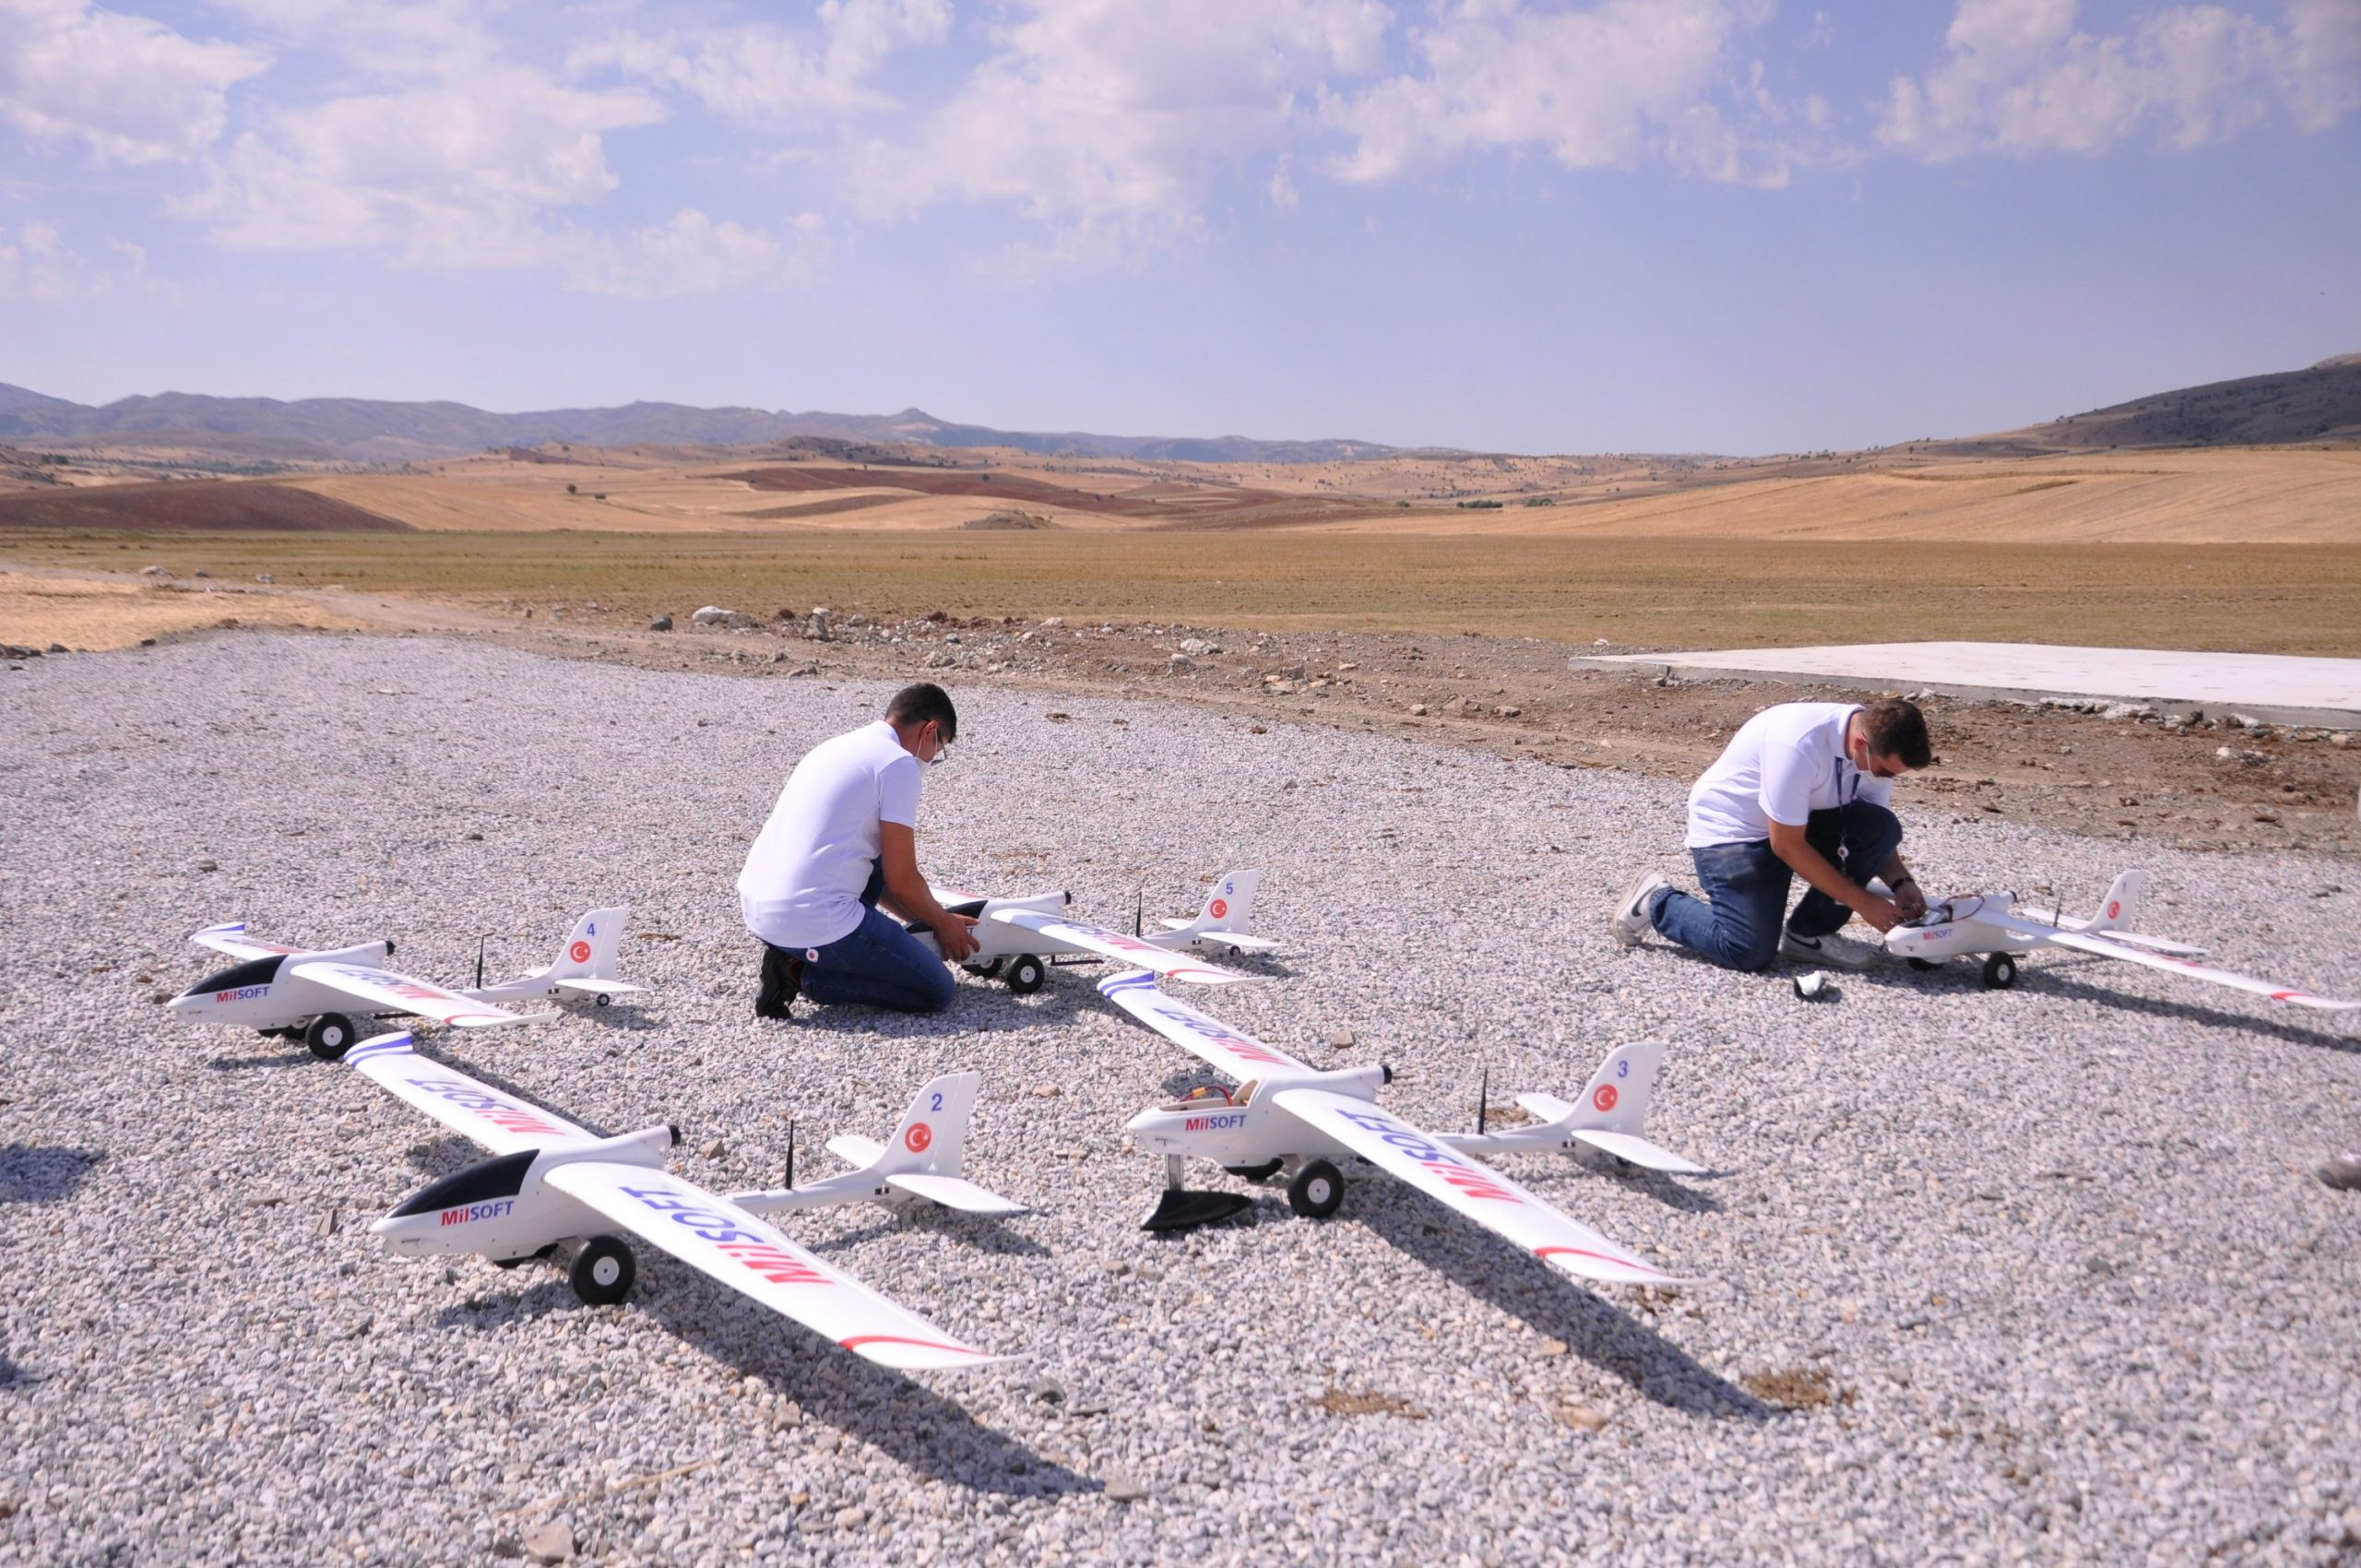 AI-Controlled Software For Drone Swarms Developed By Turkish Company